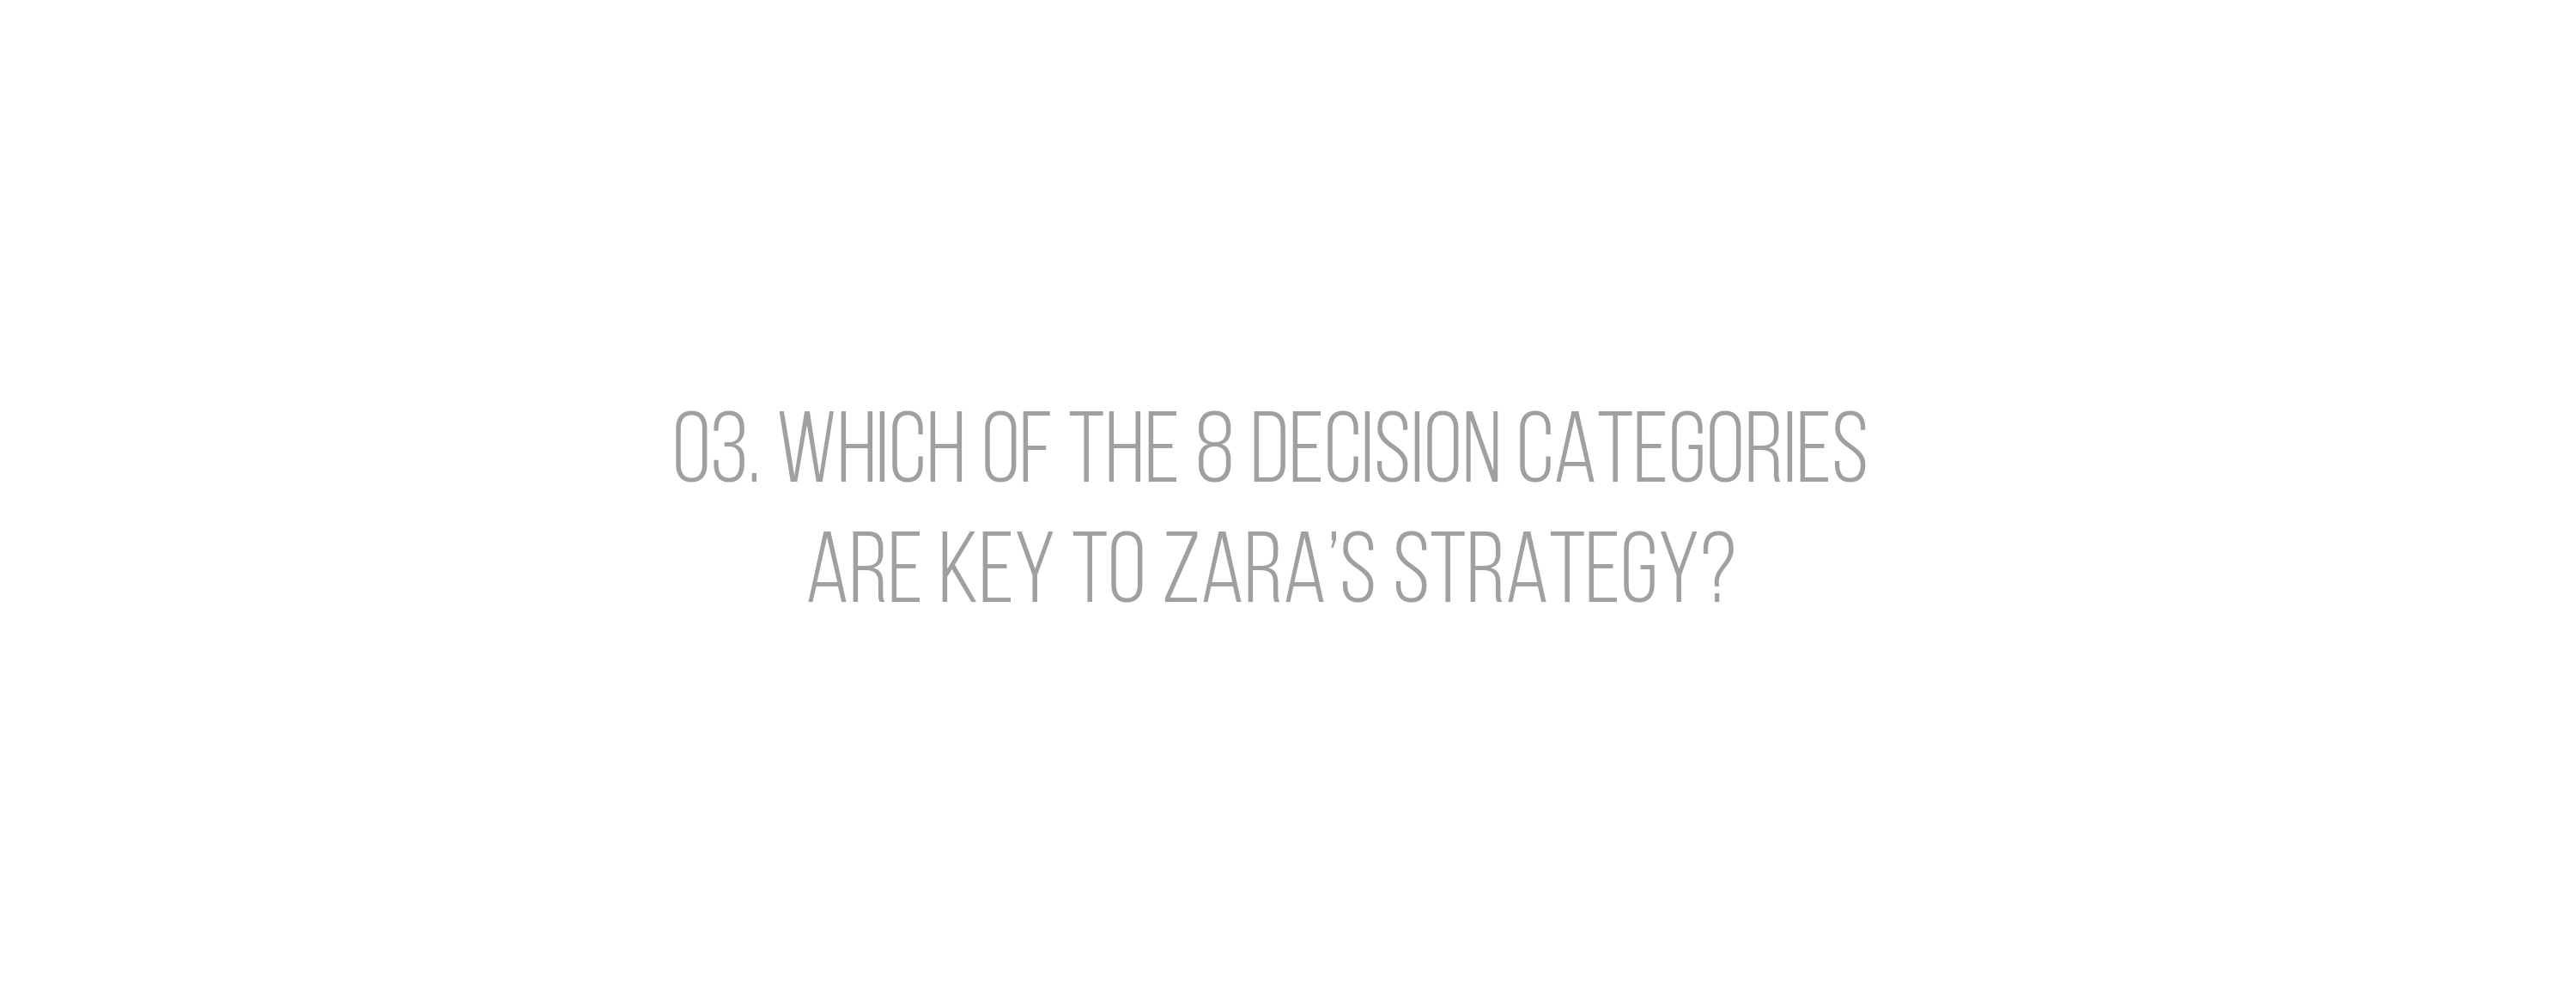 zara stakeholder analysis International management journals the stakeholder theory in the modern global business which fits three levels of stakeholder analysis – rational.